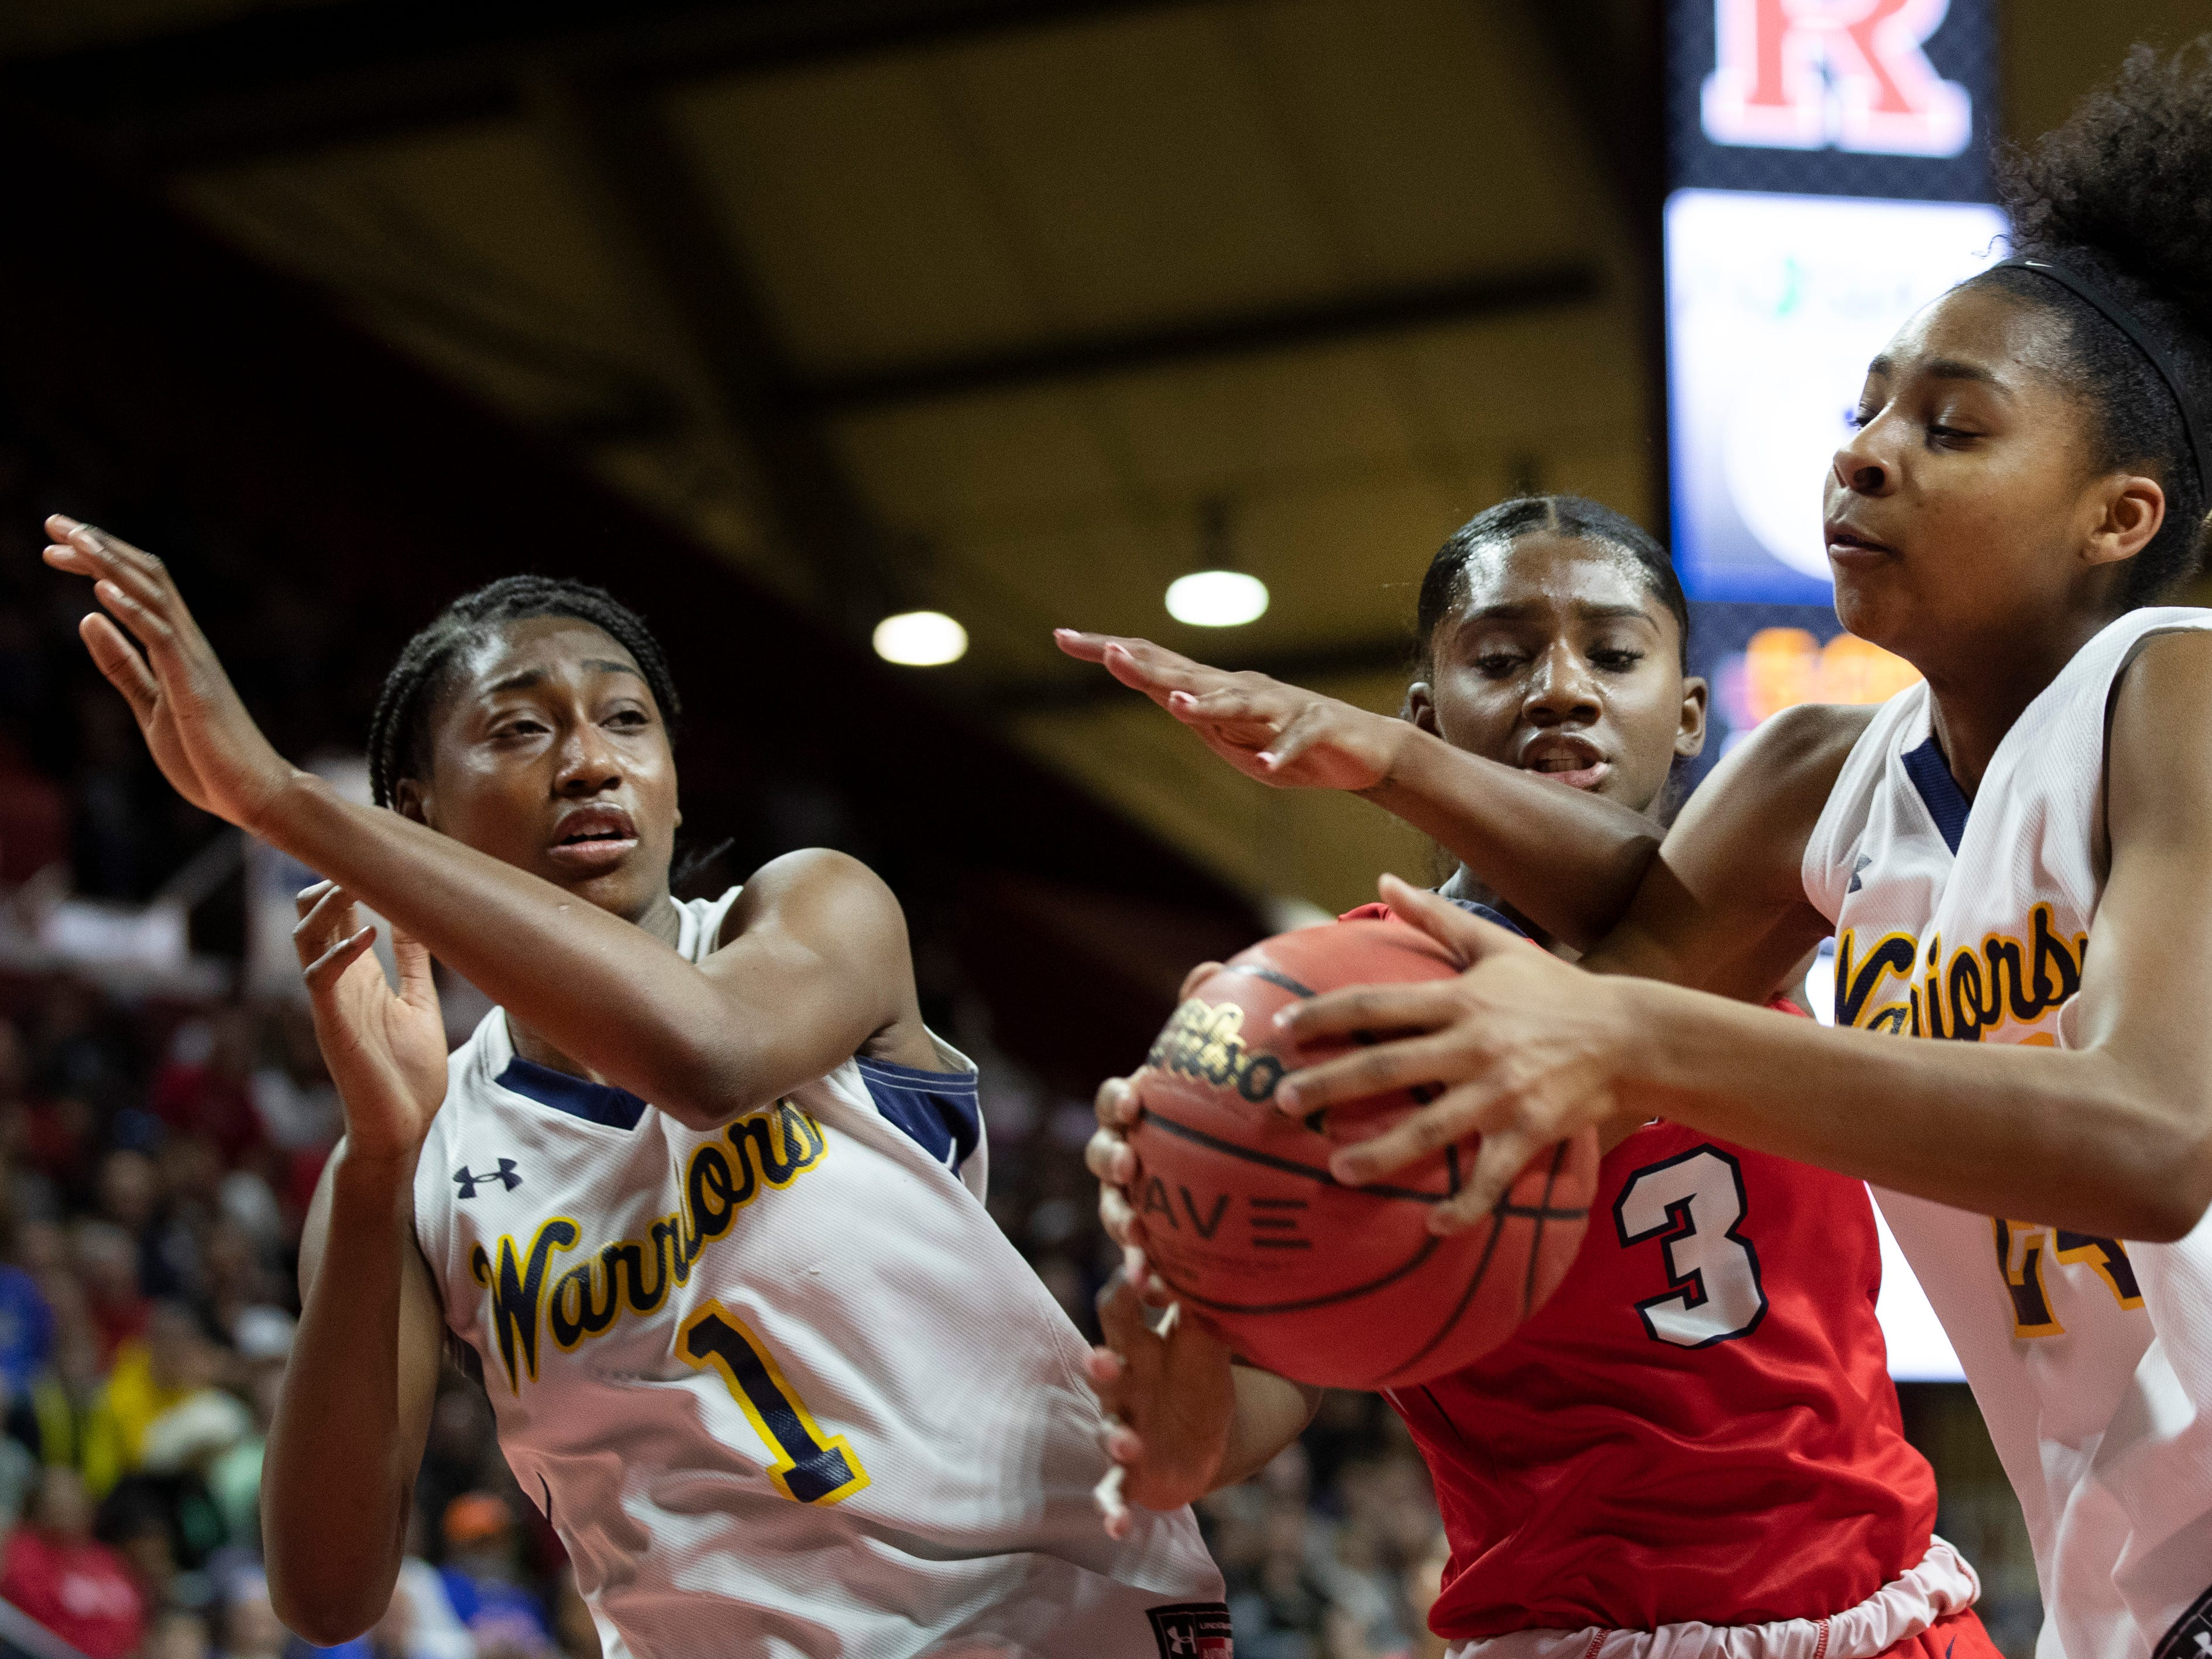 Saddle River Day's Jaida Patrick (3) and Franklin's Christina Midgette (24) battle for a rebound. Franklin vs Saddle River Day in 2019 NJSIAA girls basketball Tournament of Champions final in Piscataway, N.J. on March 17, 2019.